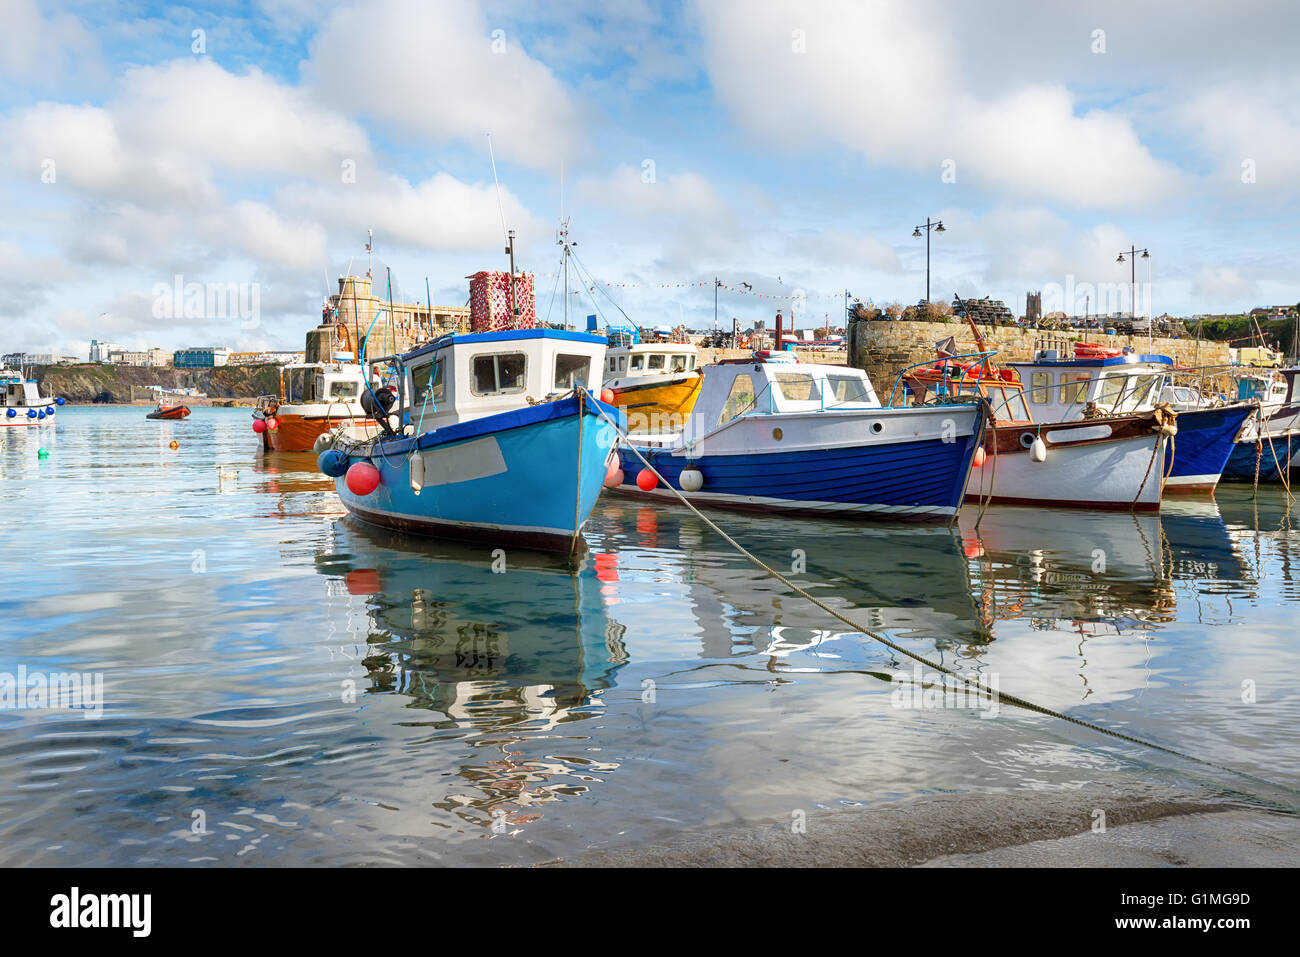 Fishing boats in the harbour at Newquay on the Cornwall coast Stock Photo